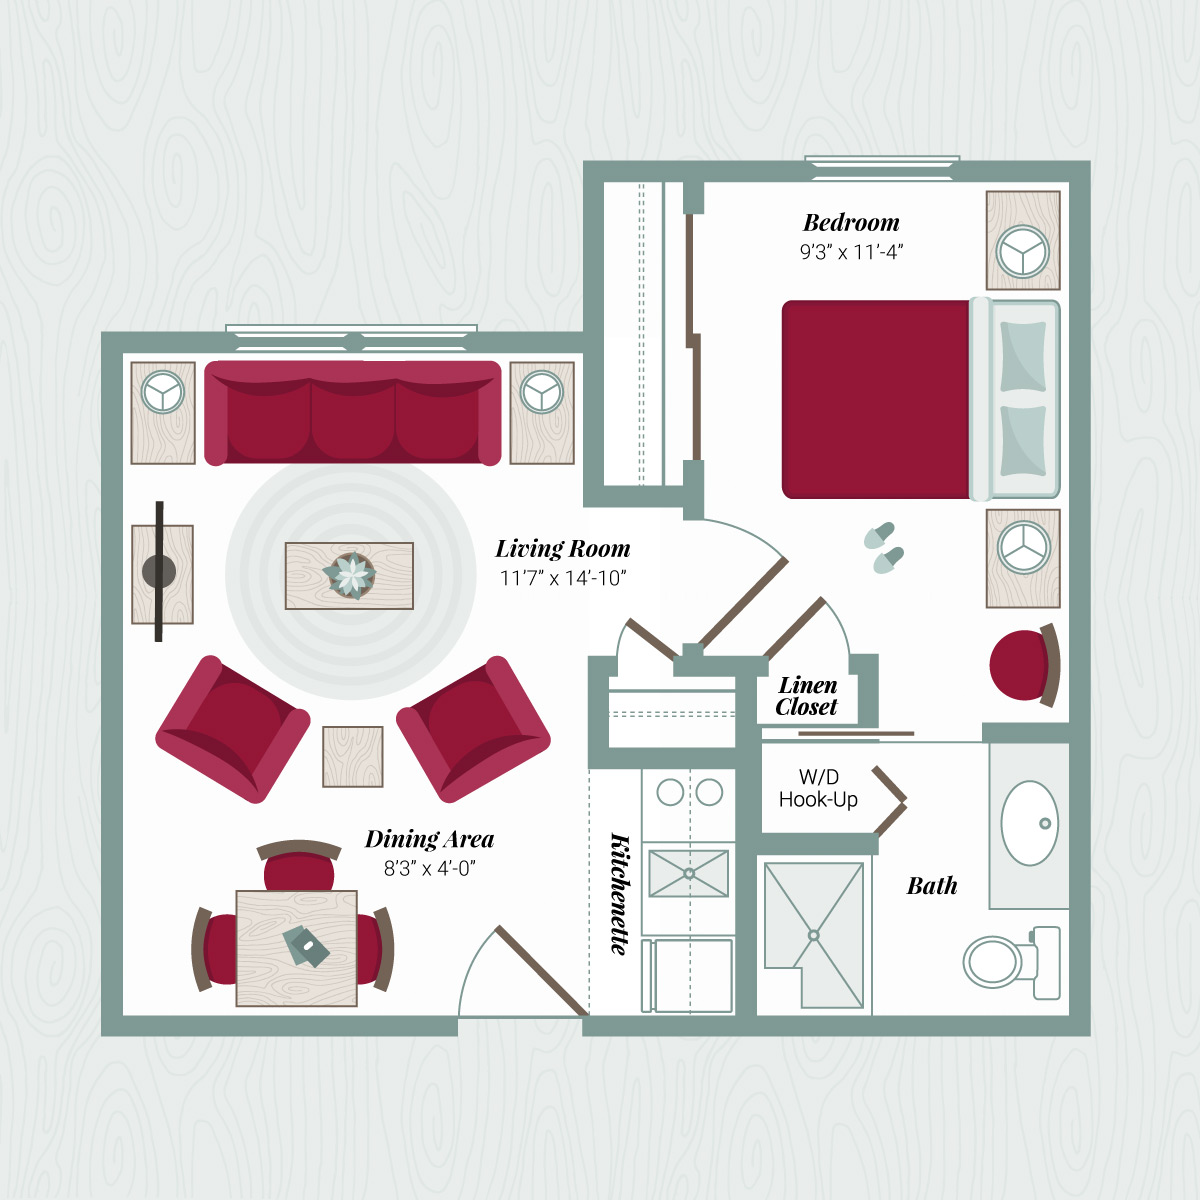 Floor Plan D - 1 Bedroom Apartment